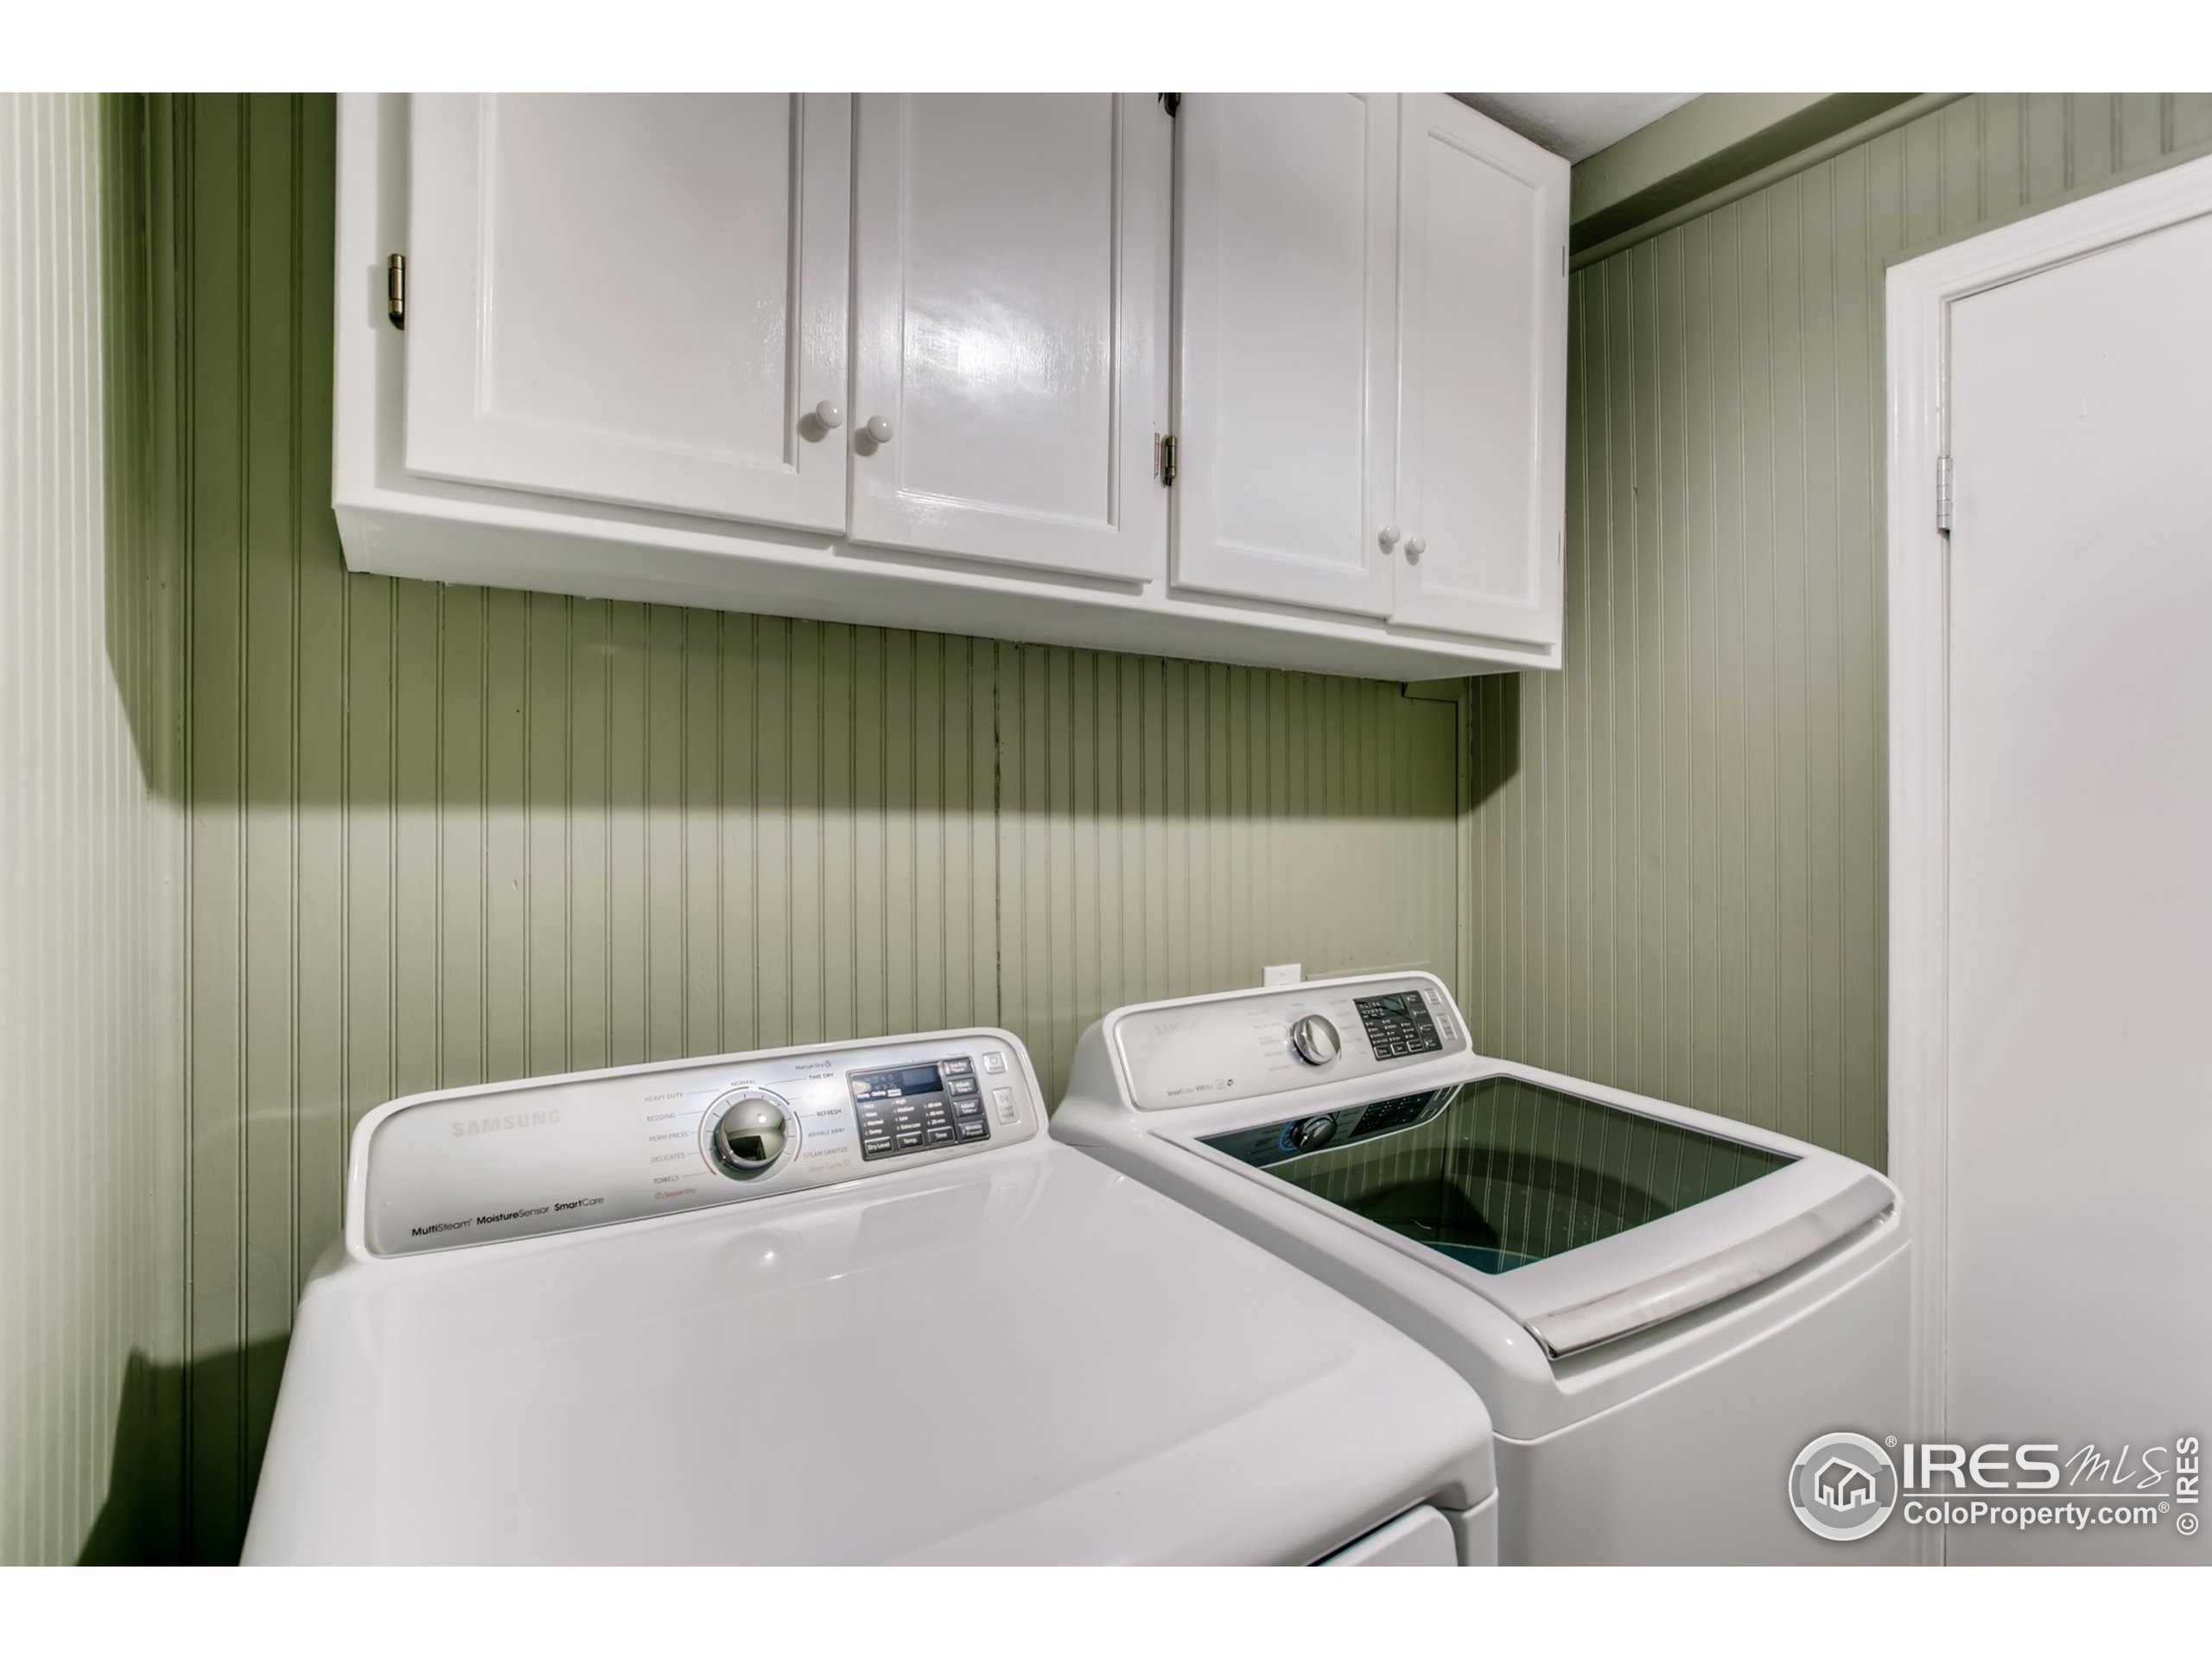 Laundry Room w/ Built-in Cabinets. Includes High Efficiency Washer/Dryer!